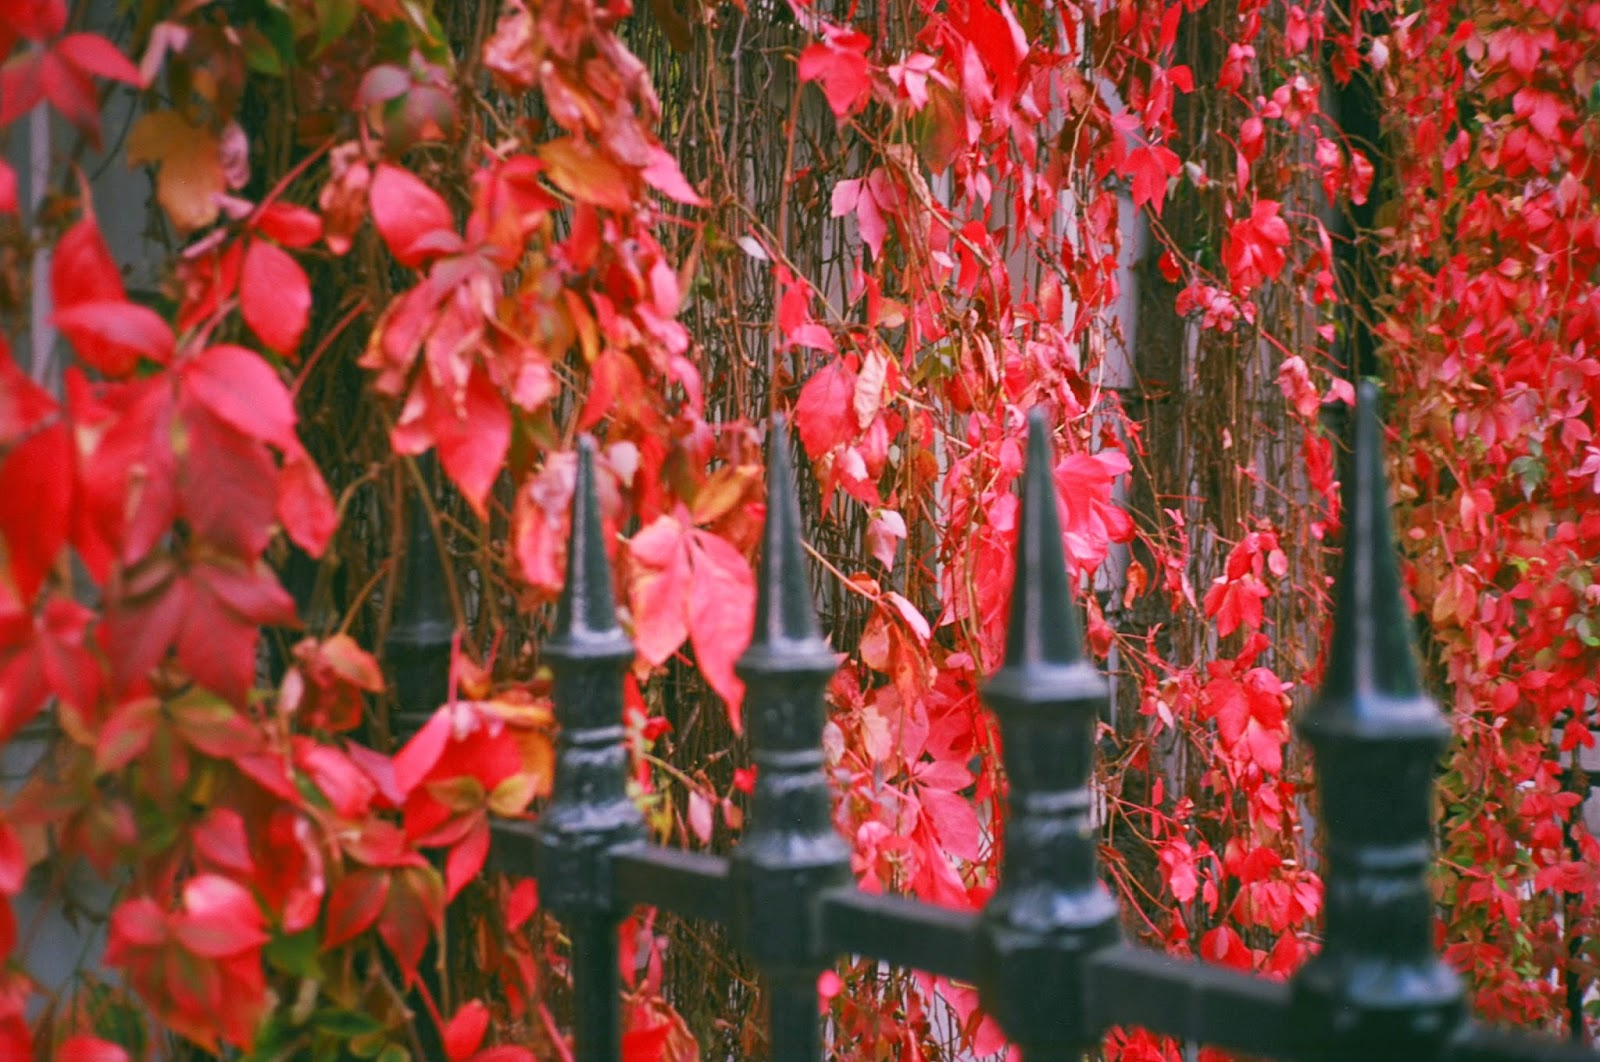 PRIVATE MEDICINE, RAILINGS, AUTUMN LEAVES, COSMETIC SURGERY, HARLEY STREET, LONDON © VAC 100 DAYS / 4  MILLION CONVERSATIONS